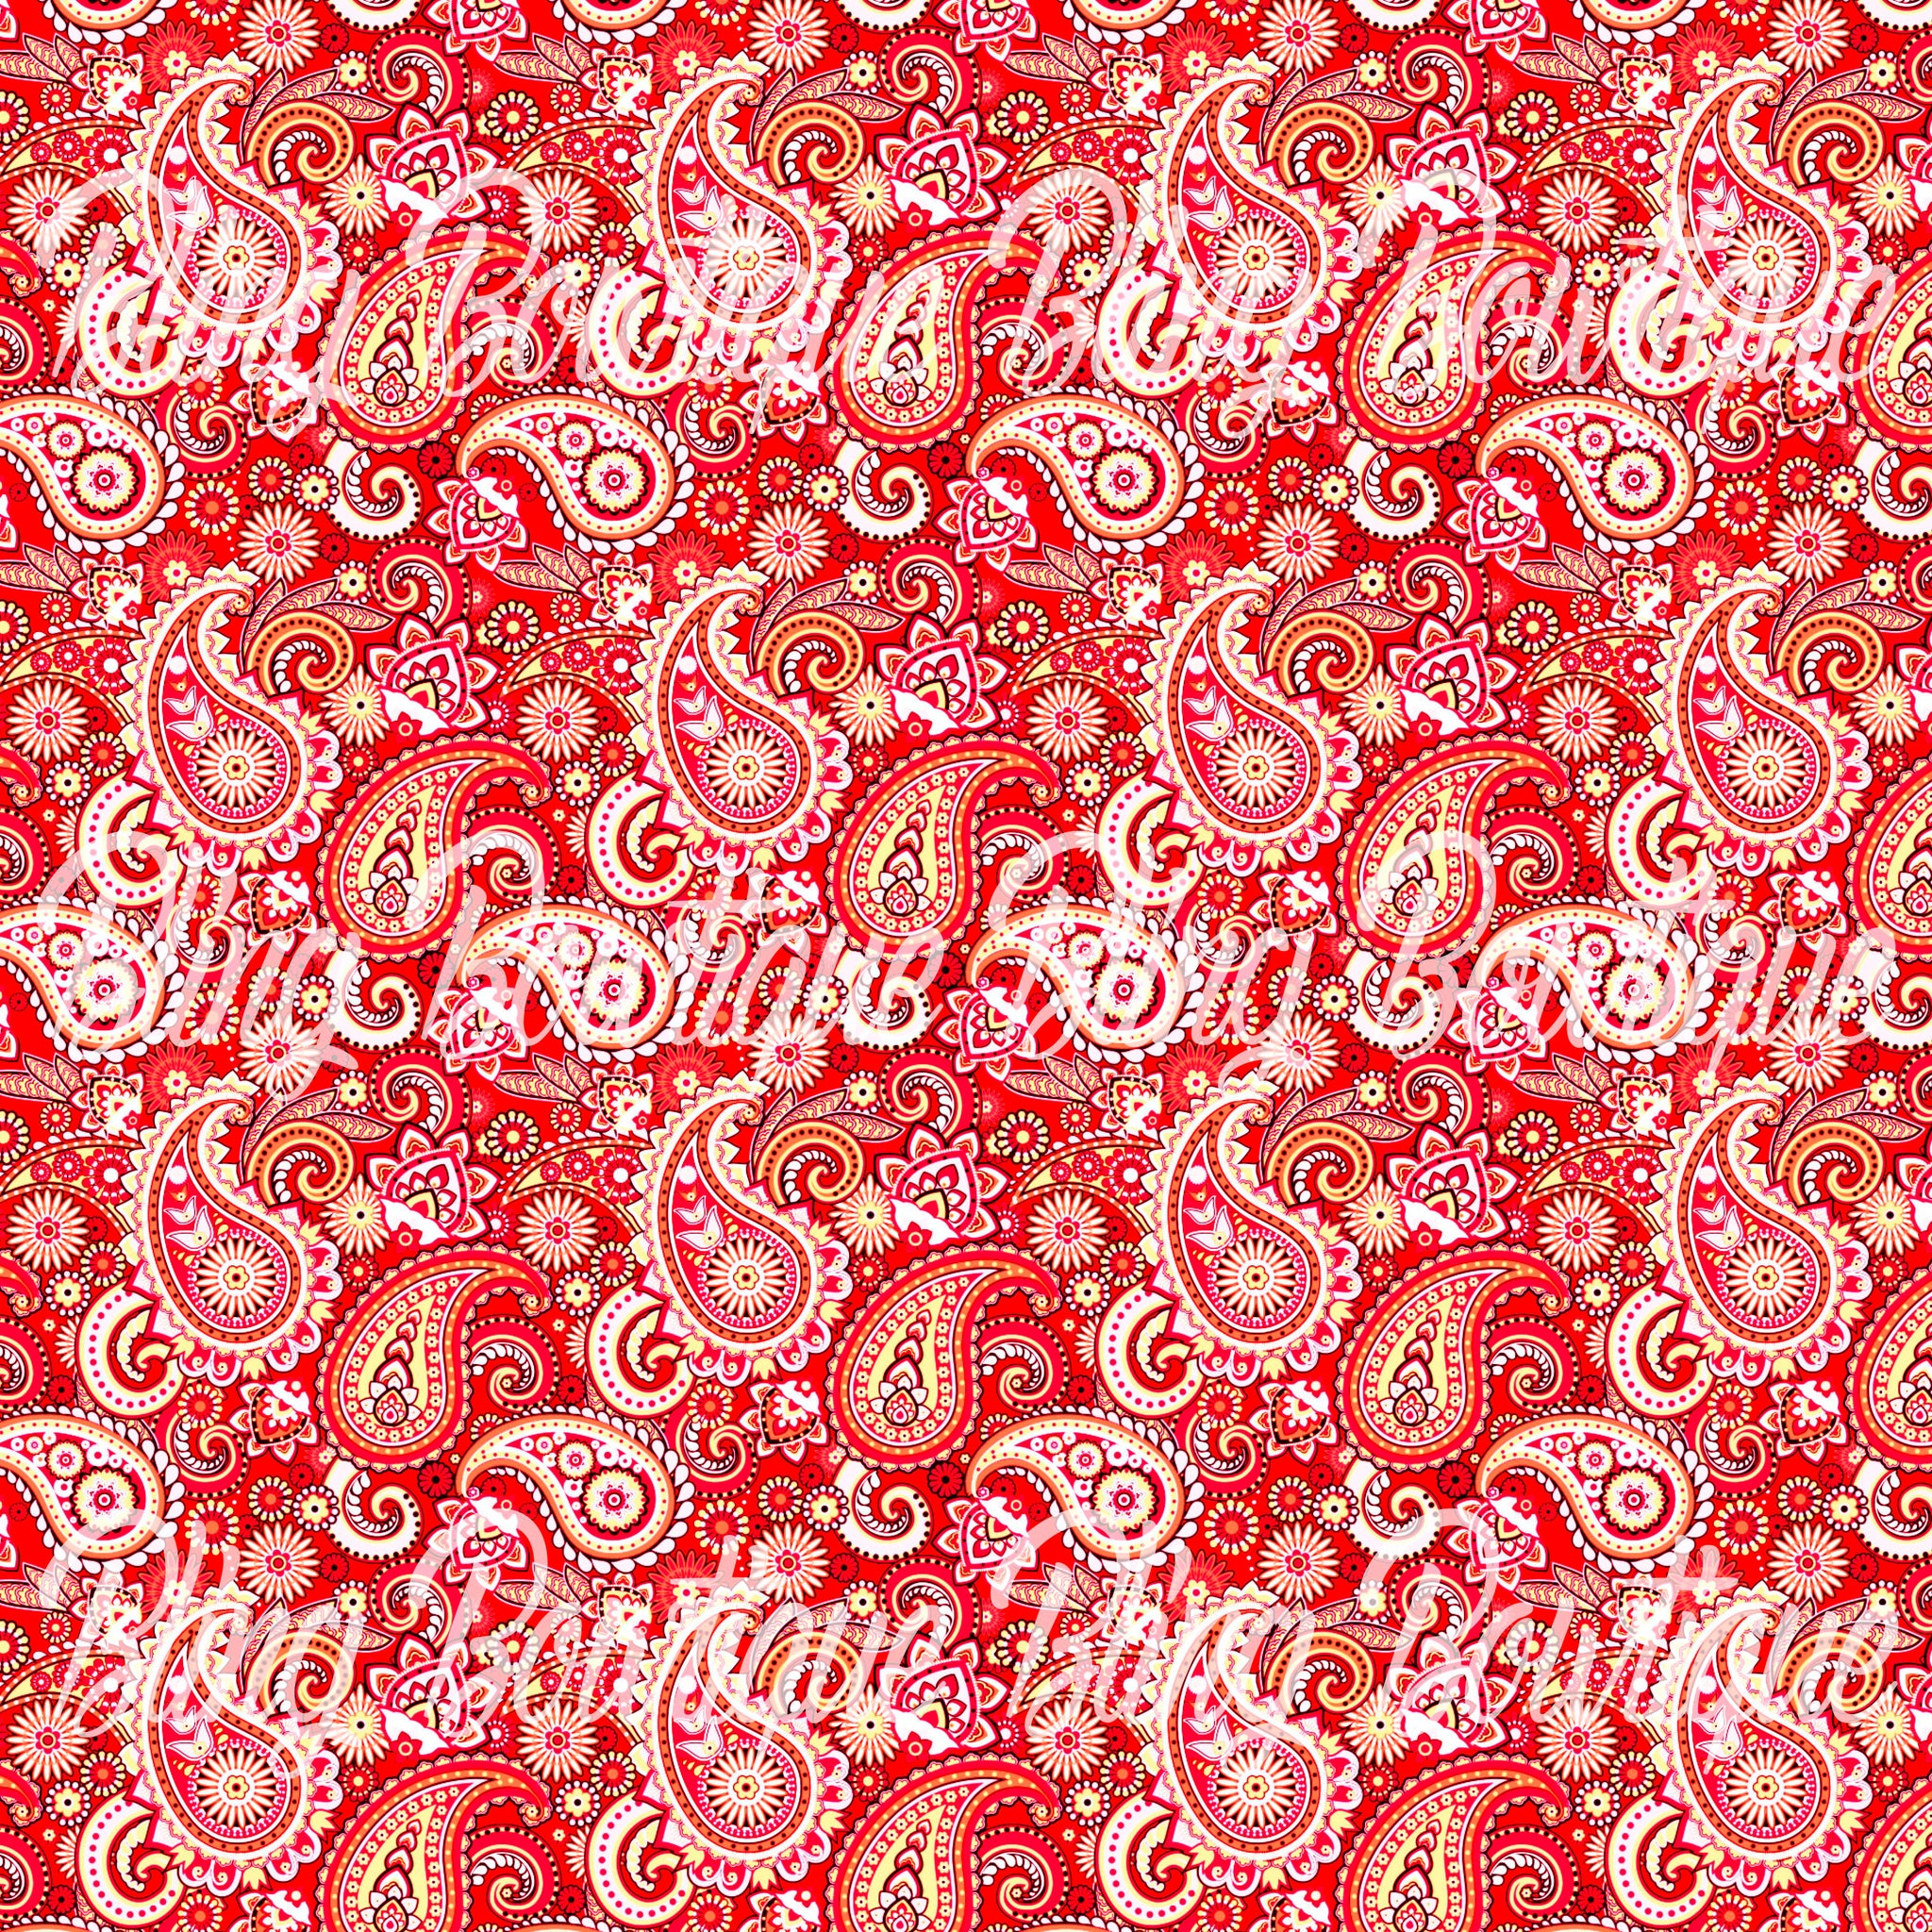 Paisley 22 Glitter Canvas, Regular Canvas, Faux Leather For Bows